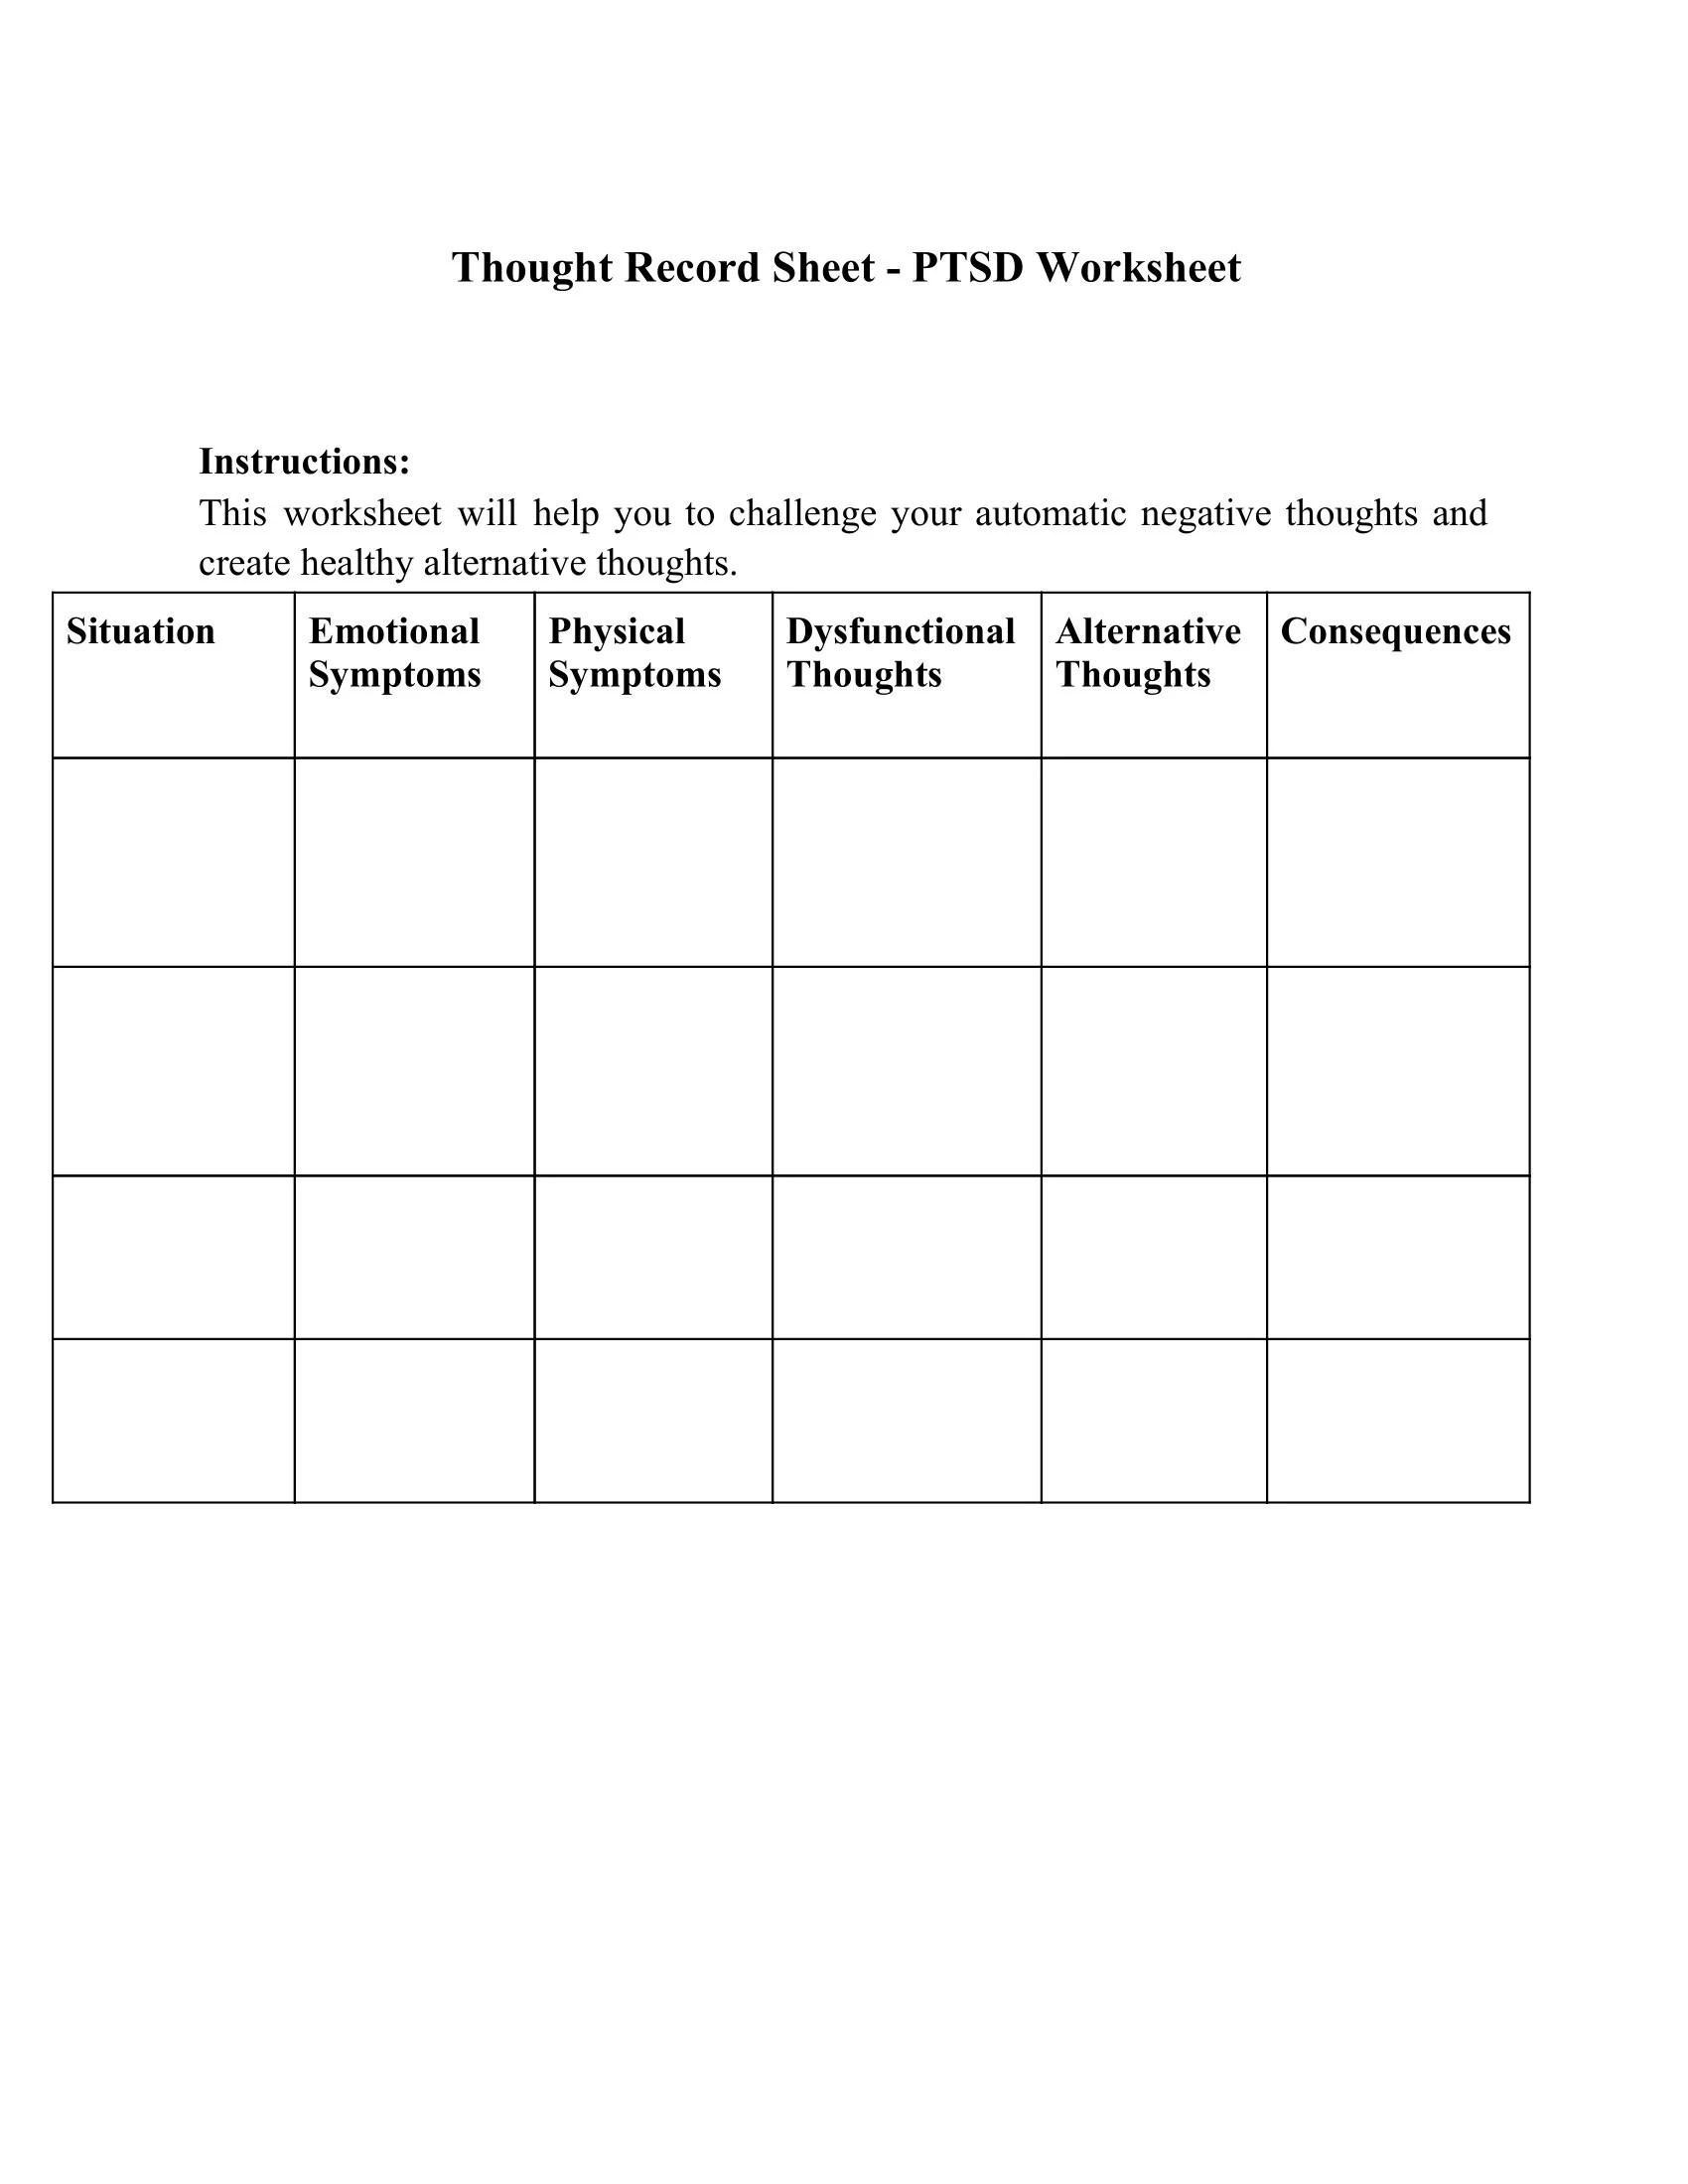 Thought Record Sheet